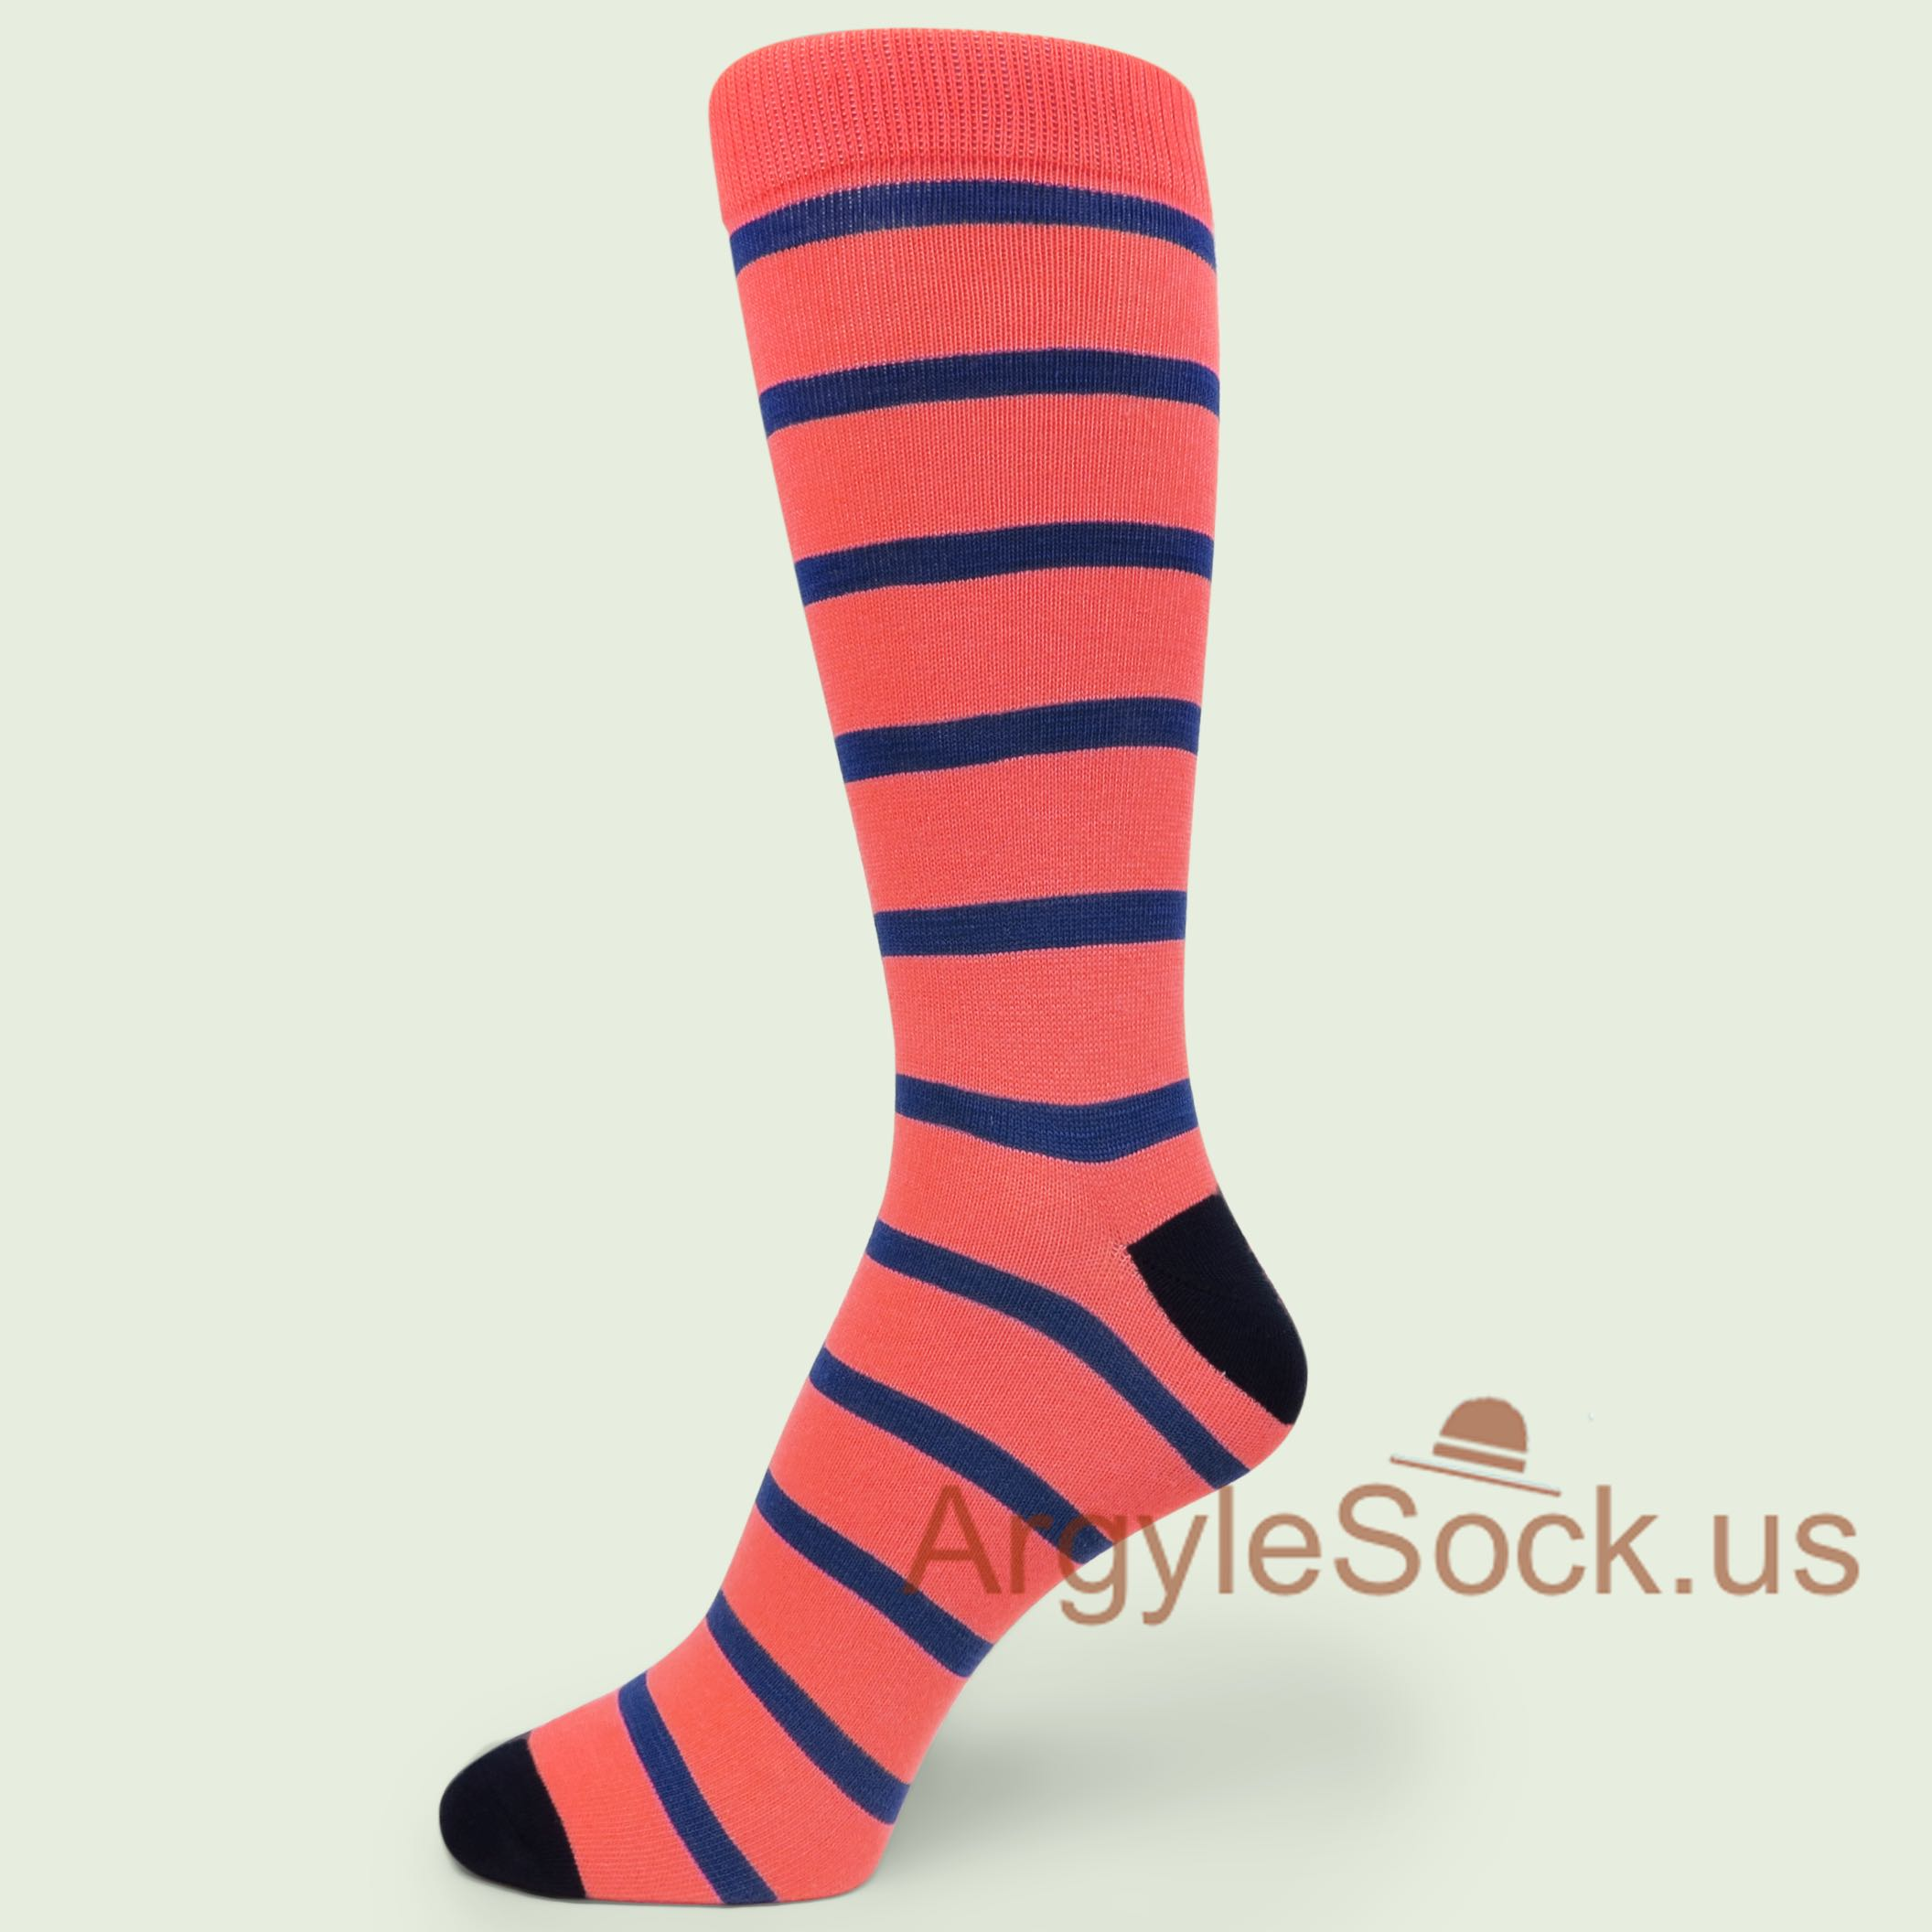 Men's Stripe Dress Socks with Bright Colors - Man's Socks Shop ...